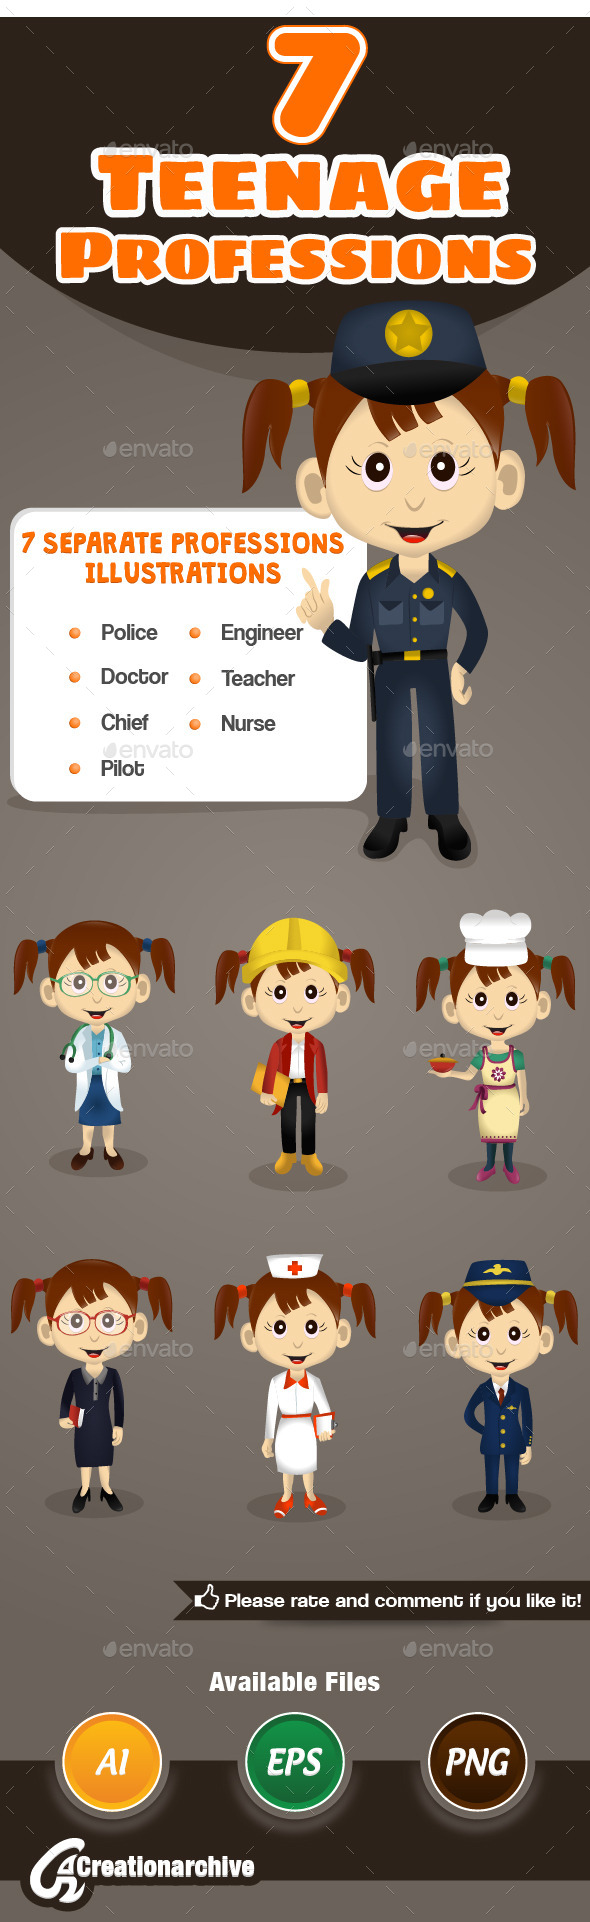 GraphicRiver 7 Teenage Professions 9756409